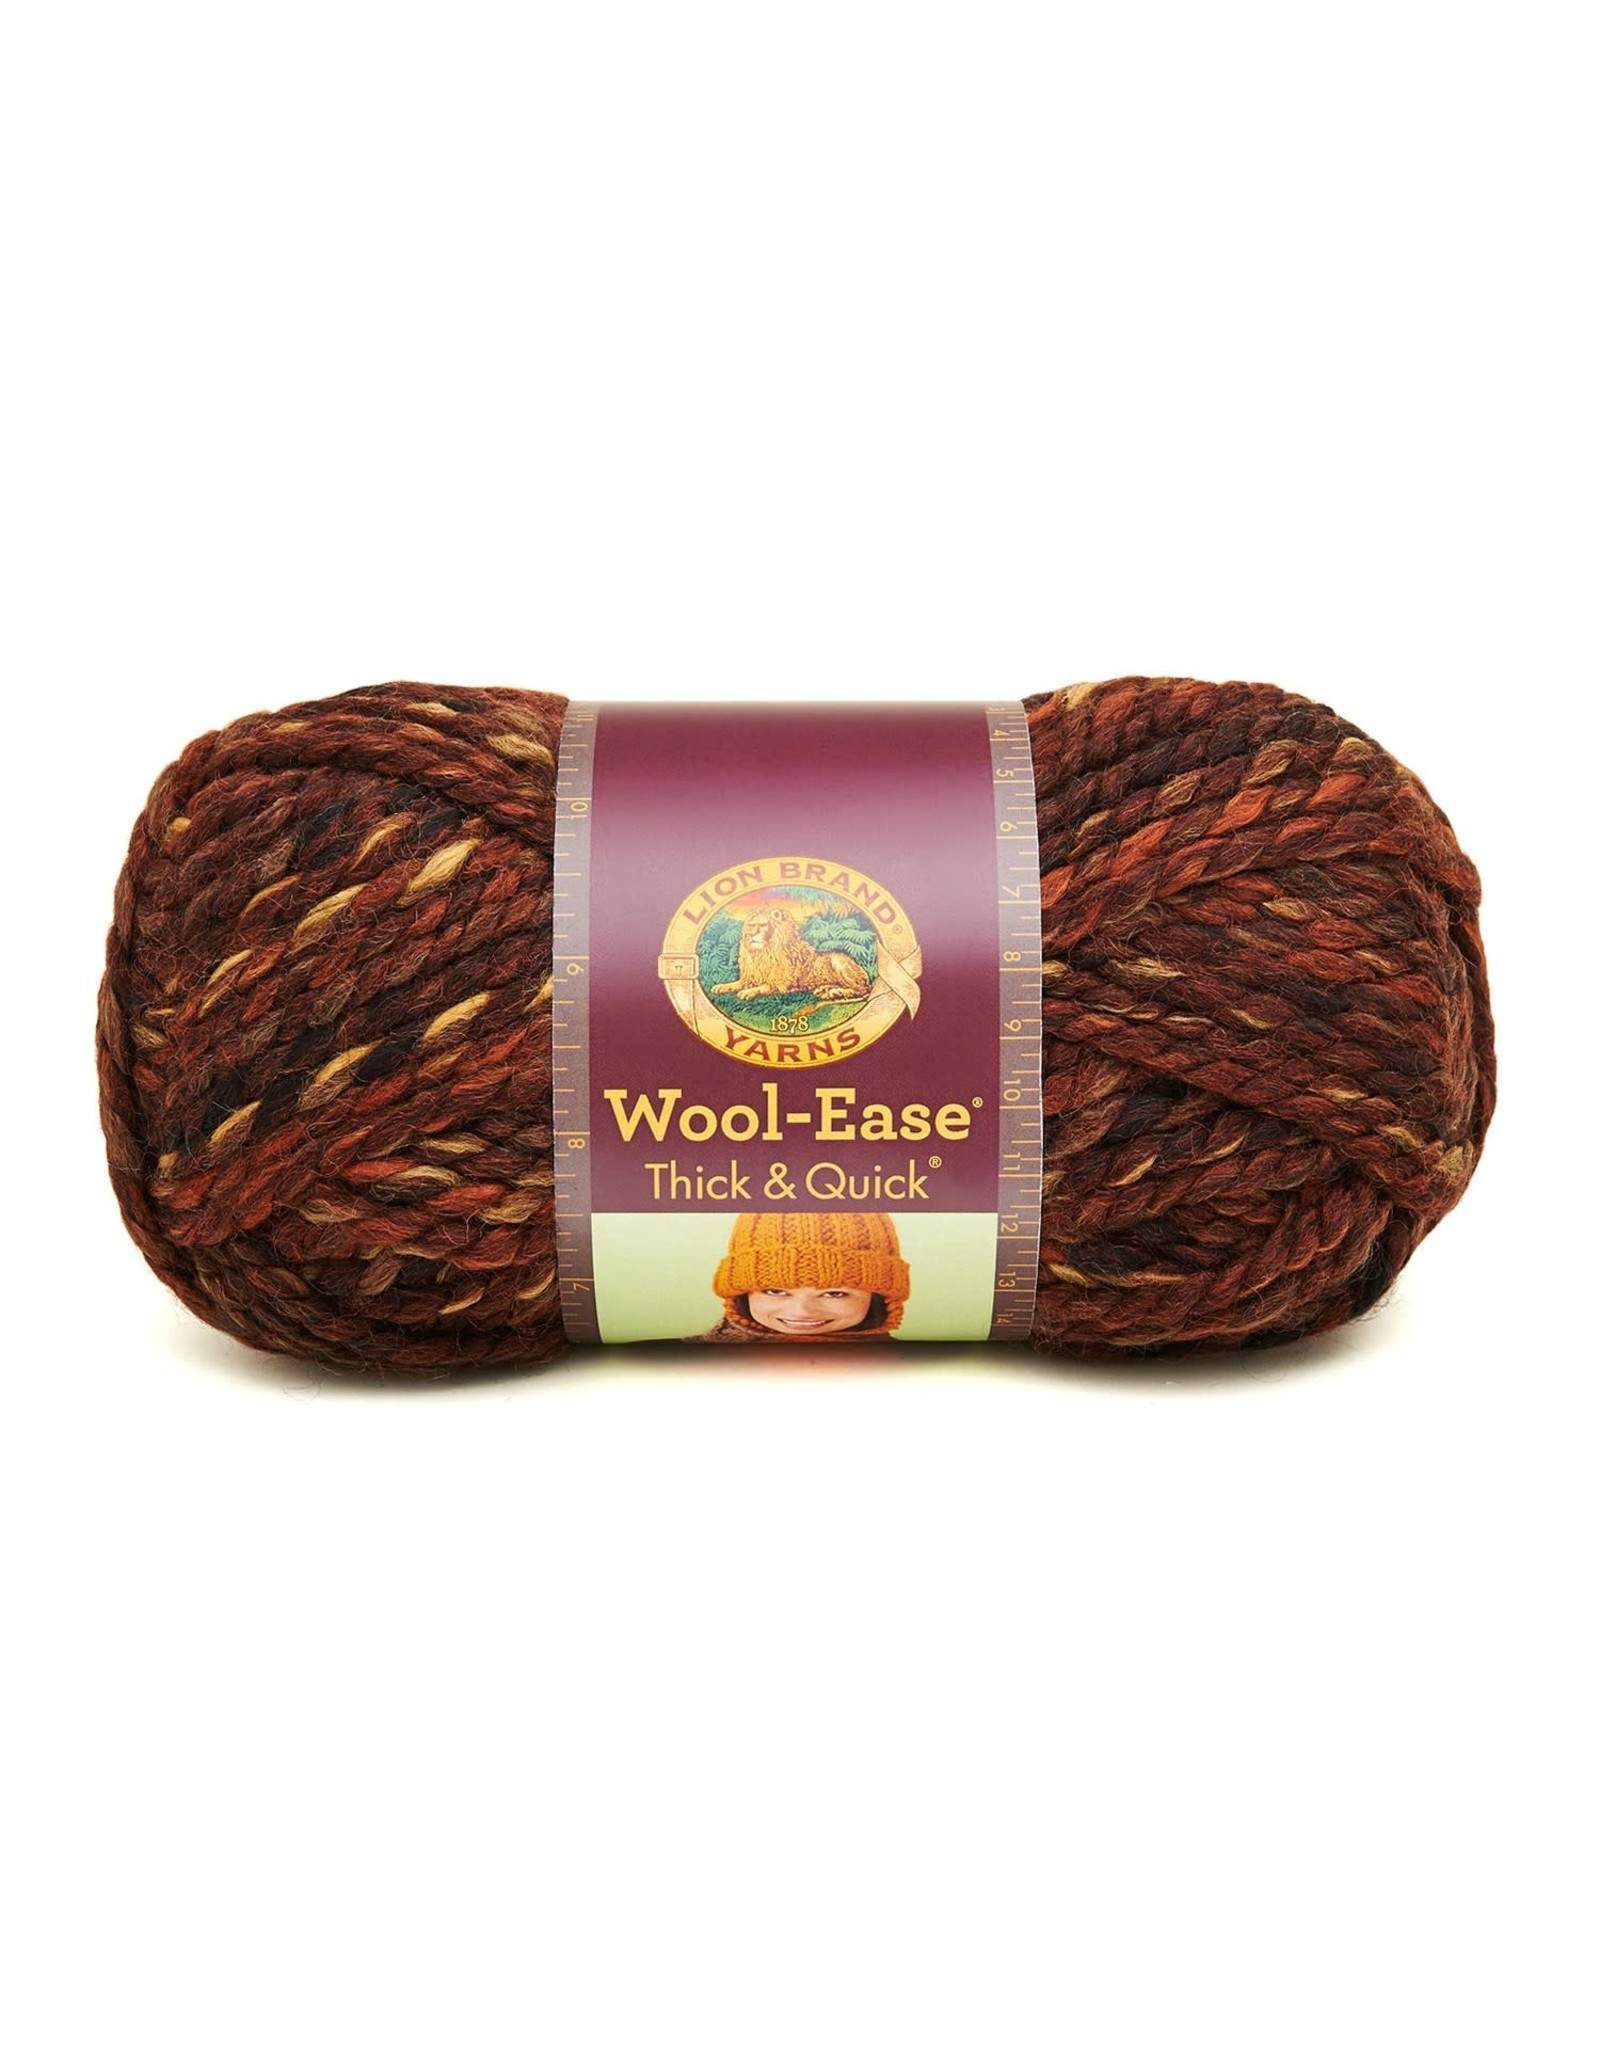 Sequoia - Wool Ease Thick and Quick - Lion Brand